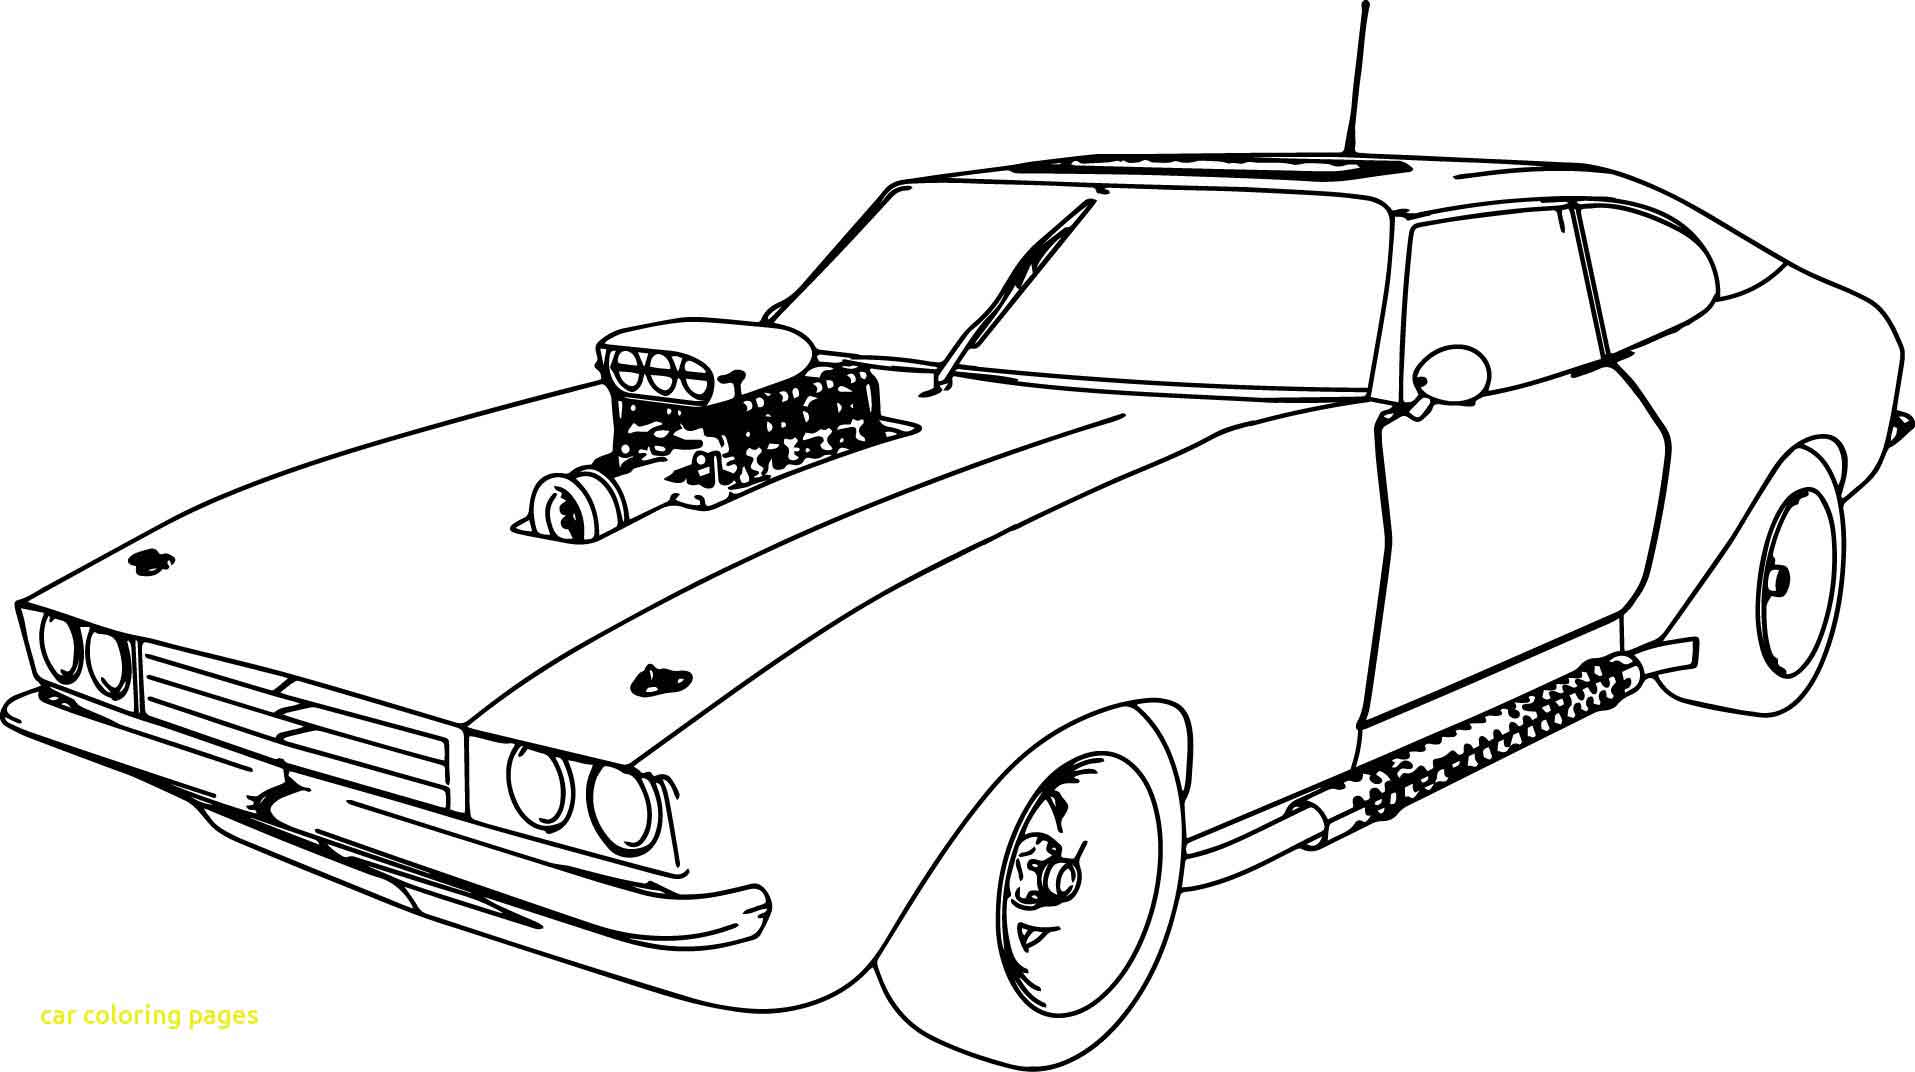 printable muscle car coloring pages sport car coloring pages printable awesome coloring pages muscle pages printable coloring car